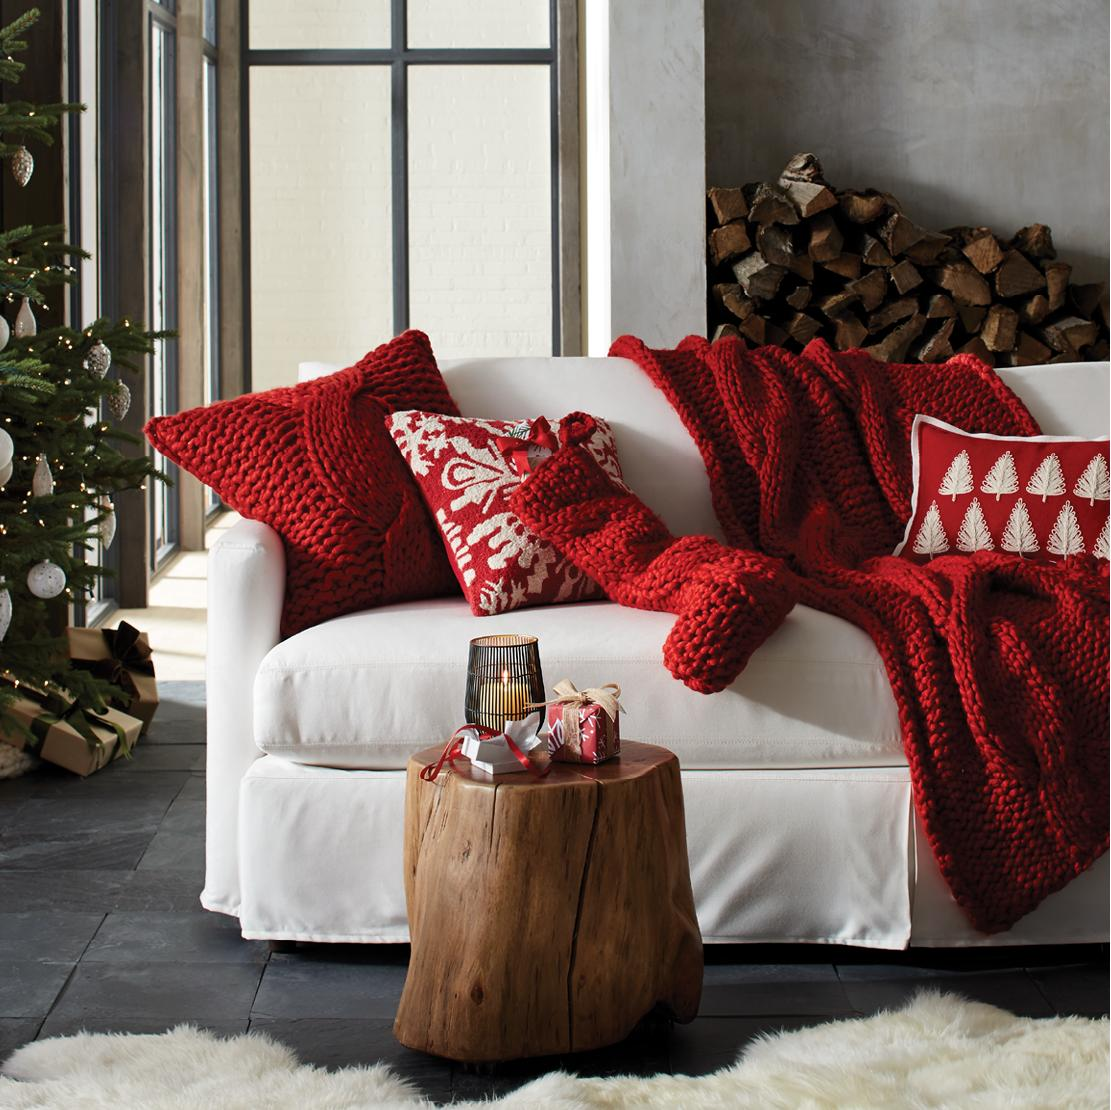 Home decor accessories for a stylish home crate and barrel cozy up to our chunky knits shop christmas decor amipublicfo Images